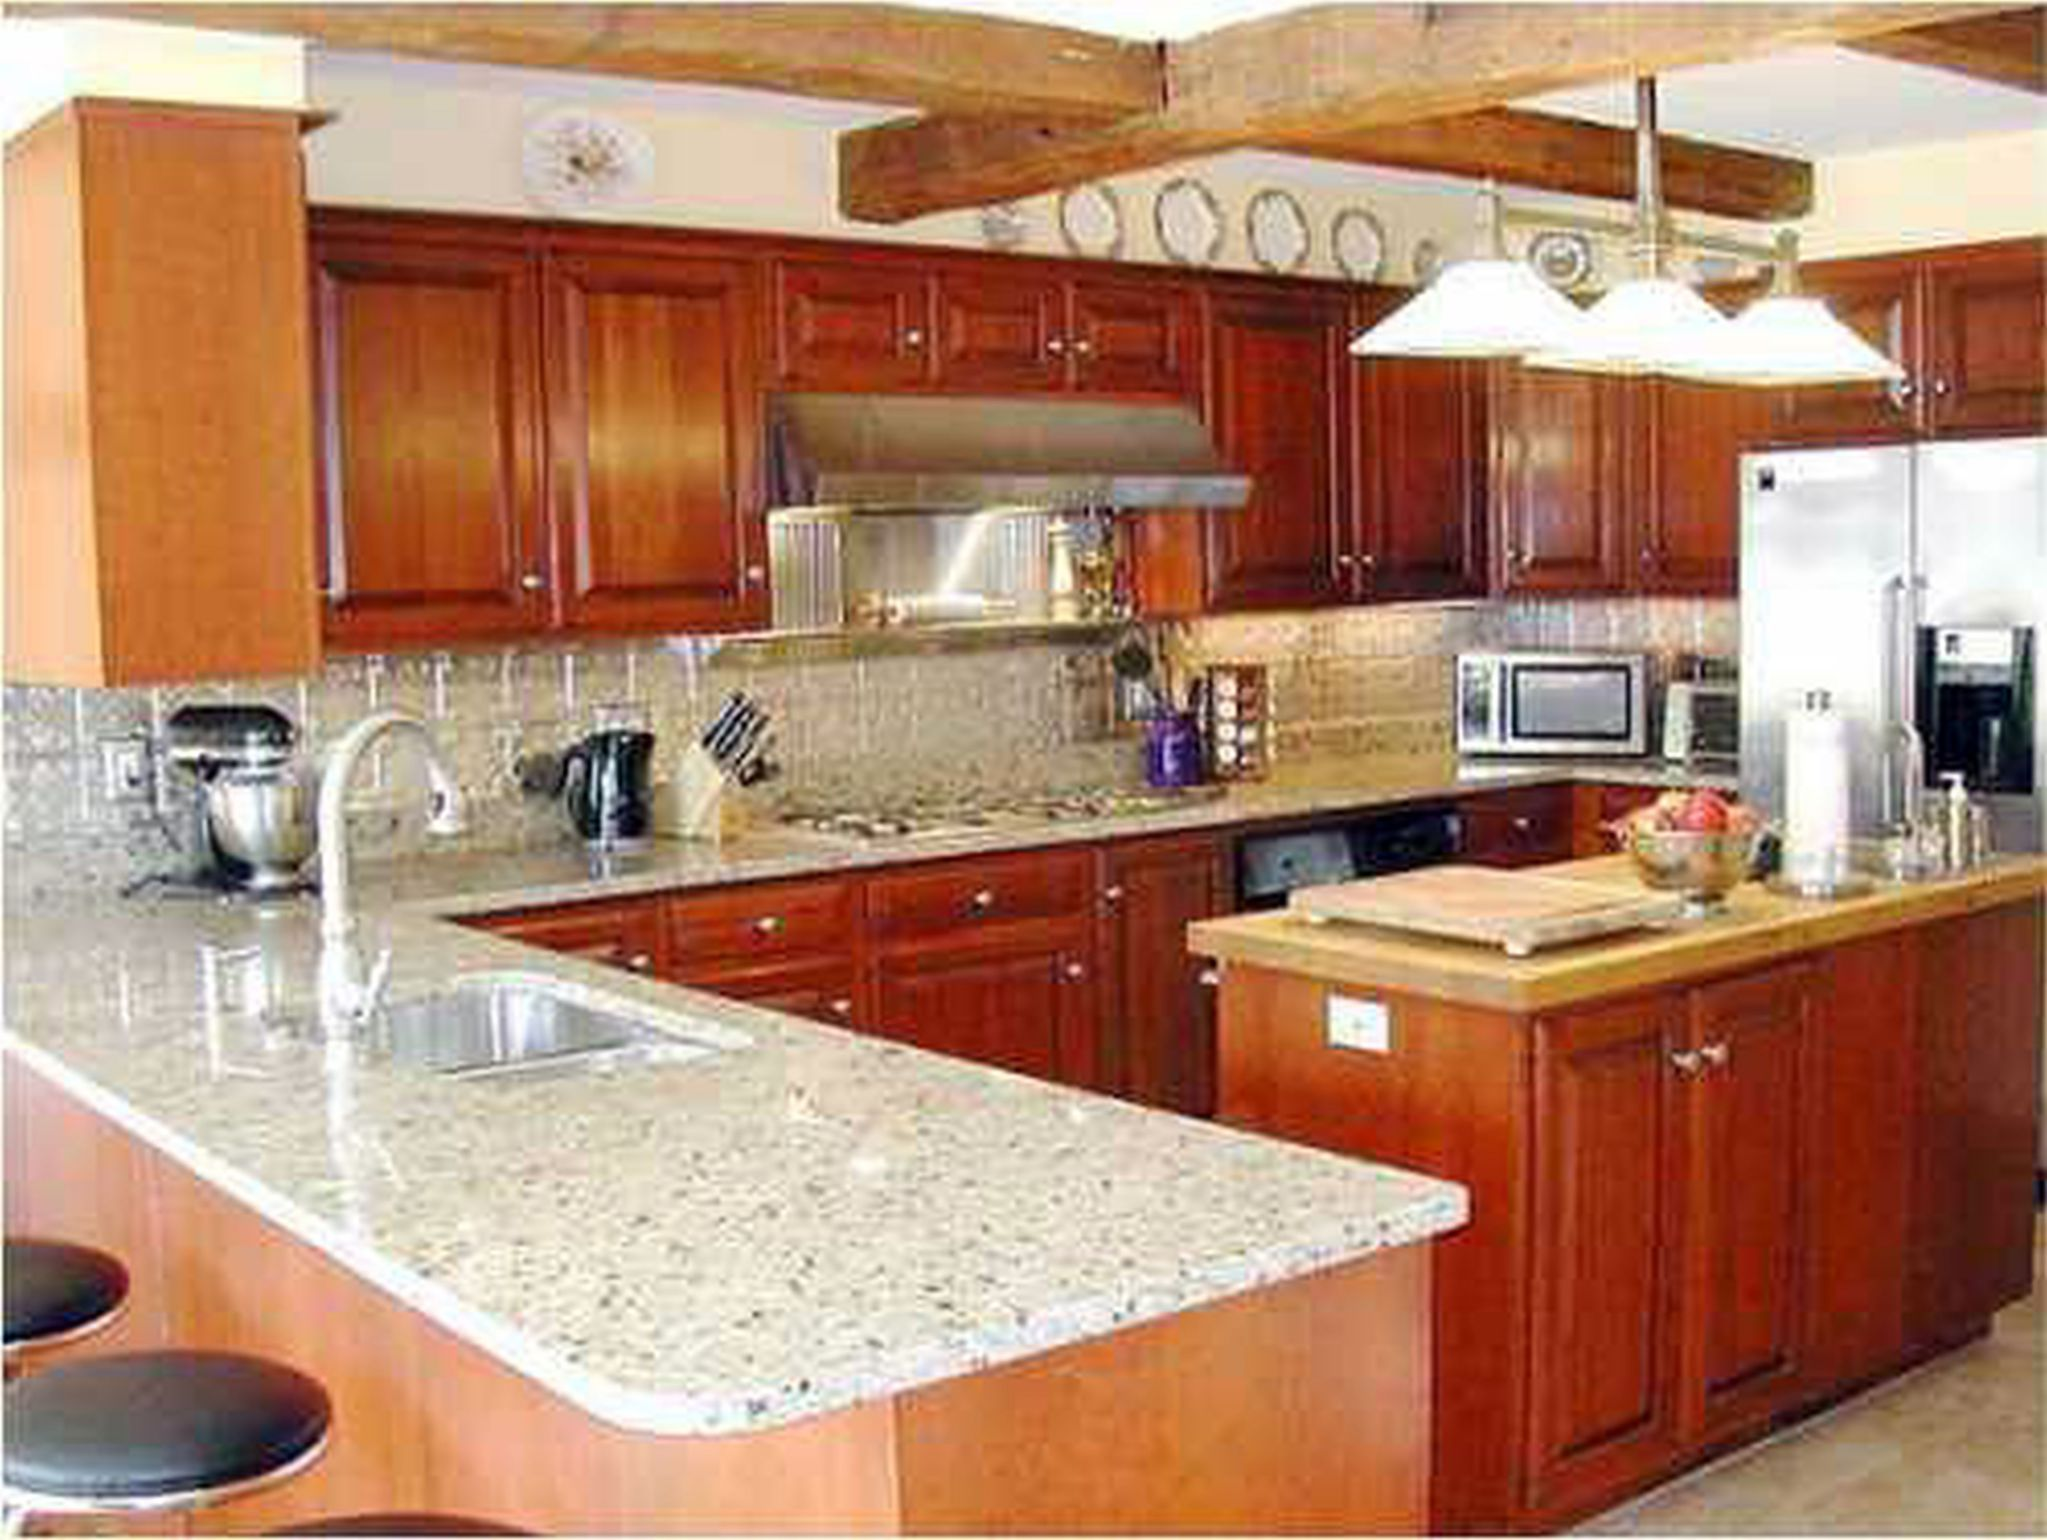 Kitchen counter decor ideas to make your cooking space become stand out midcityeast - Kitchen remodel designs ...